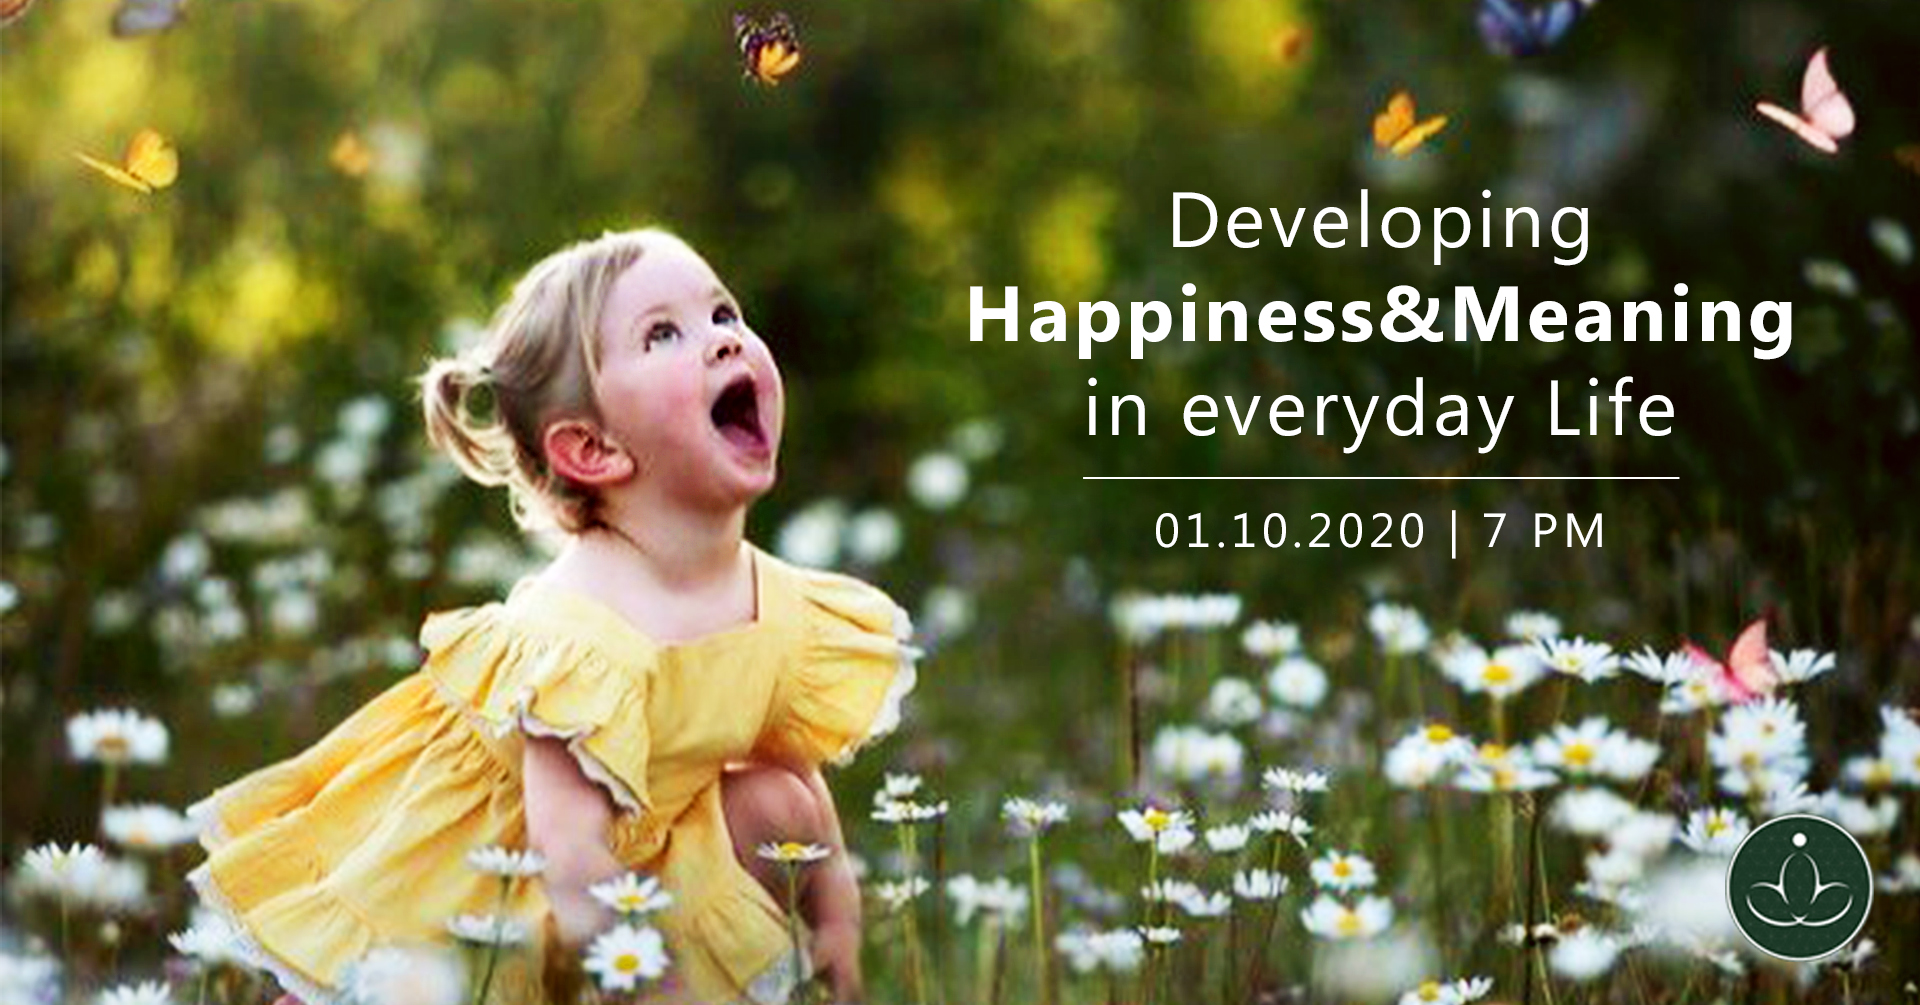 Developing Happiness & Meaning in Everyday Life